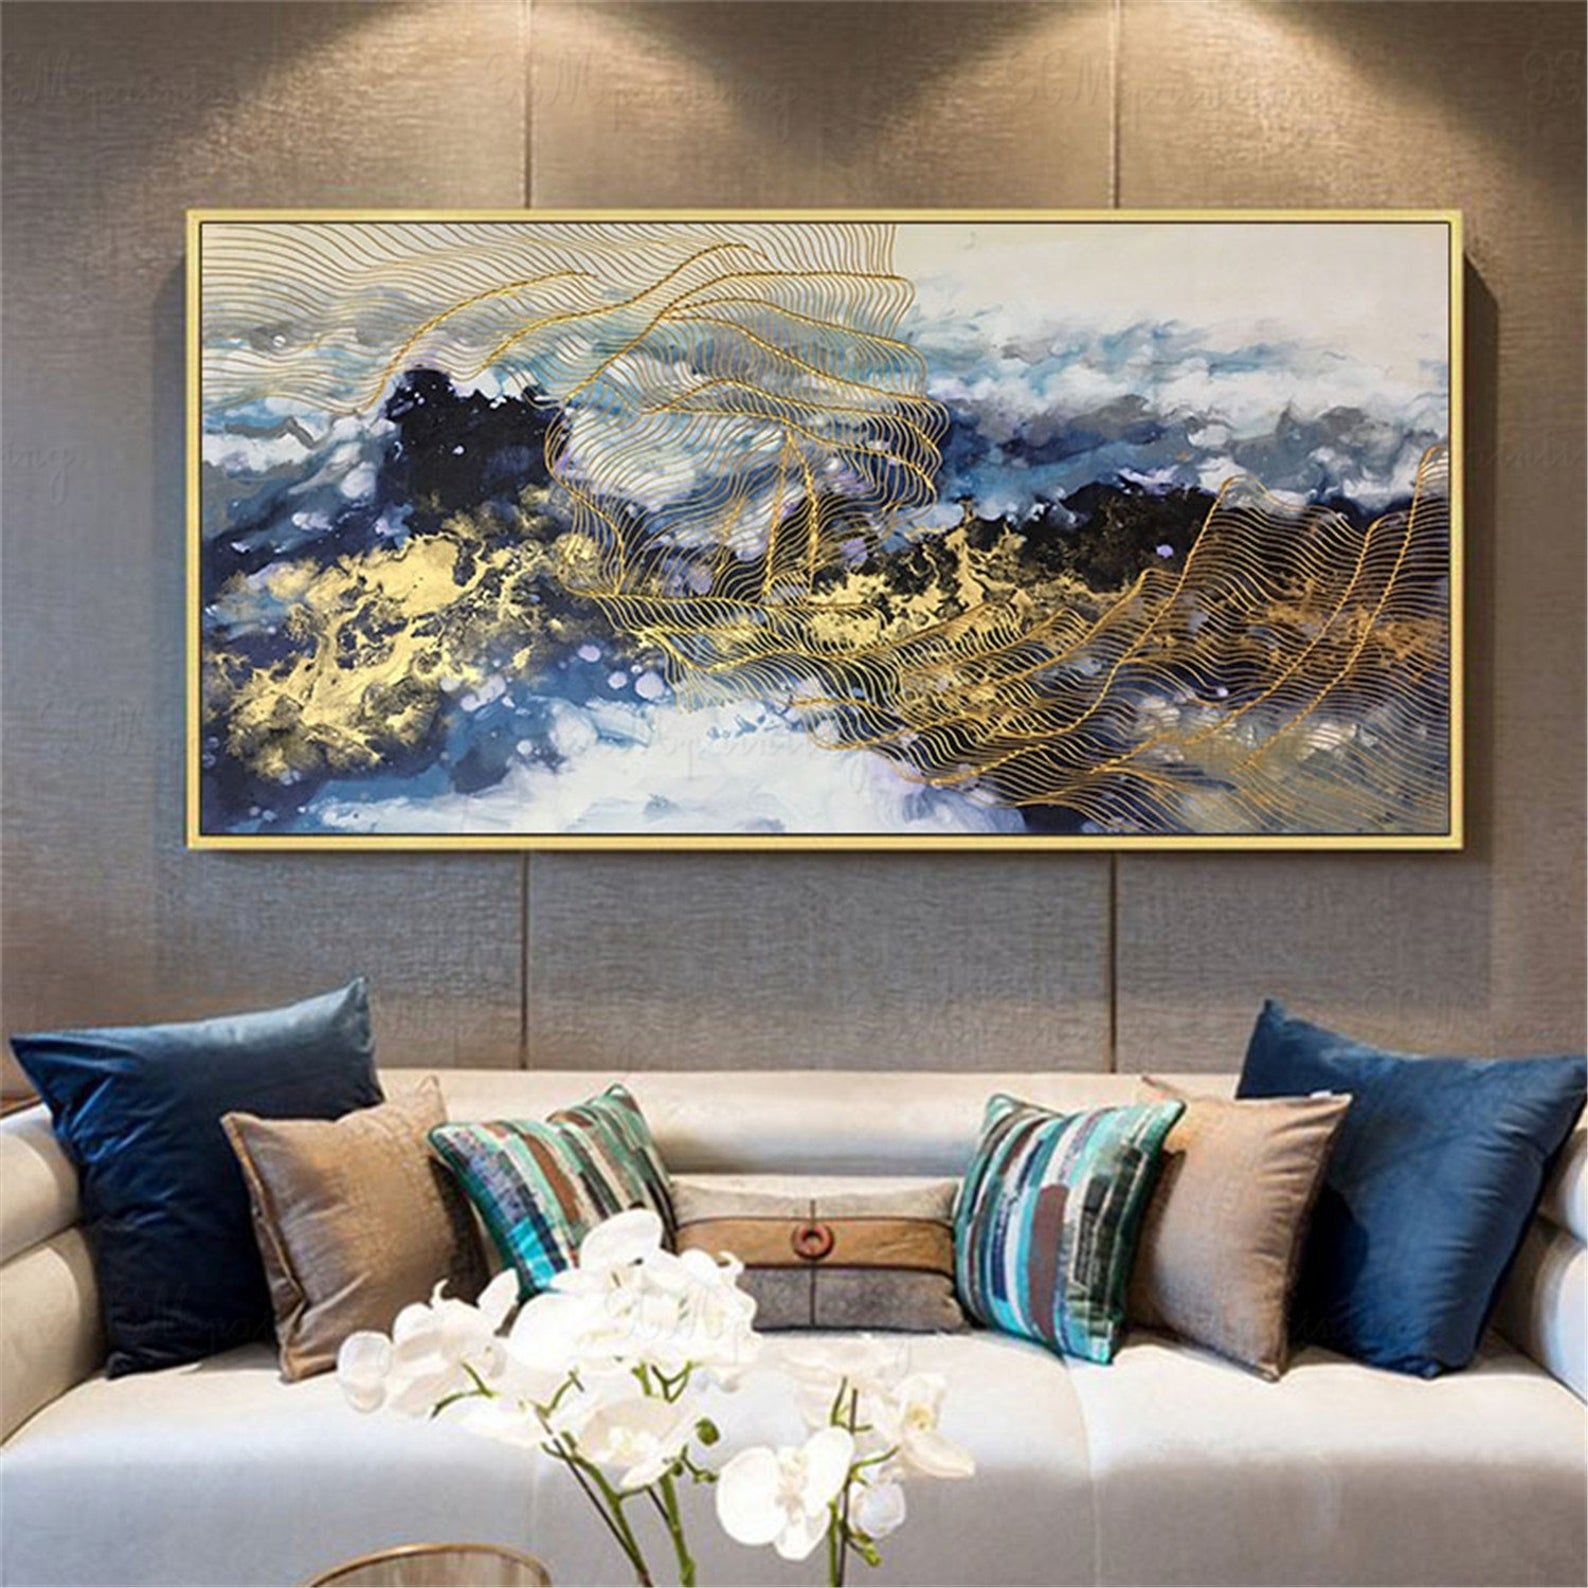 Abstract Cloud Landscape Painting Gold Lines Framed Wall Art Etsy In 2021 Wall Art Pictures Living Room Pictures Wall Art Living Room Abstract art living room